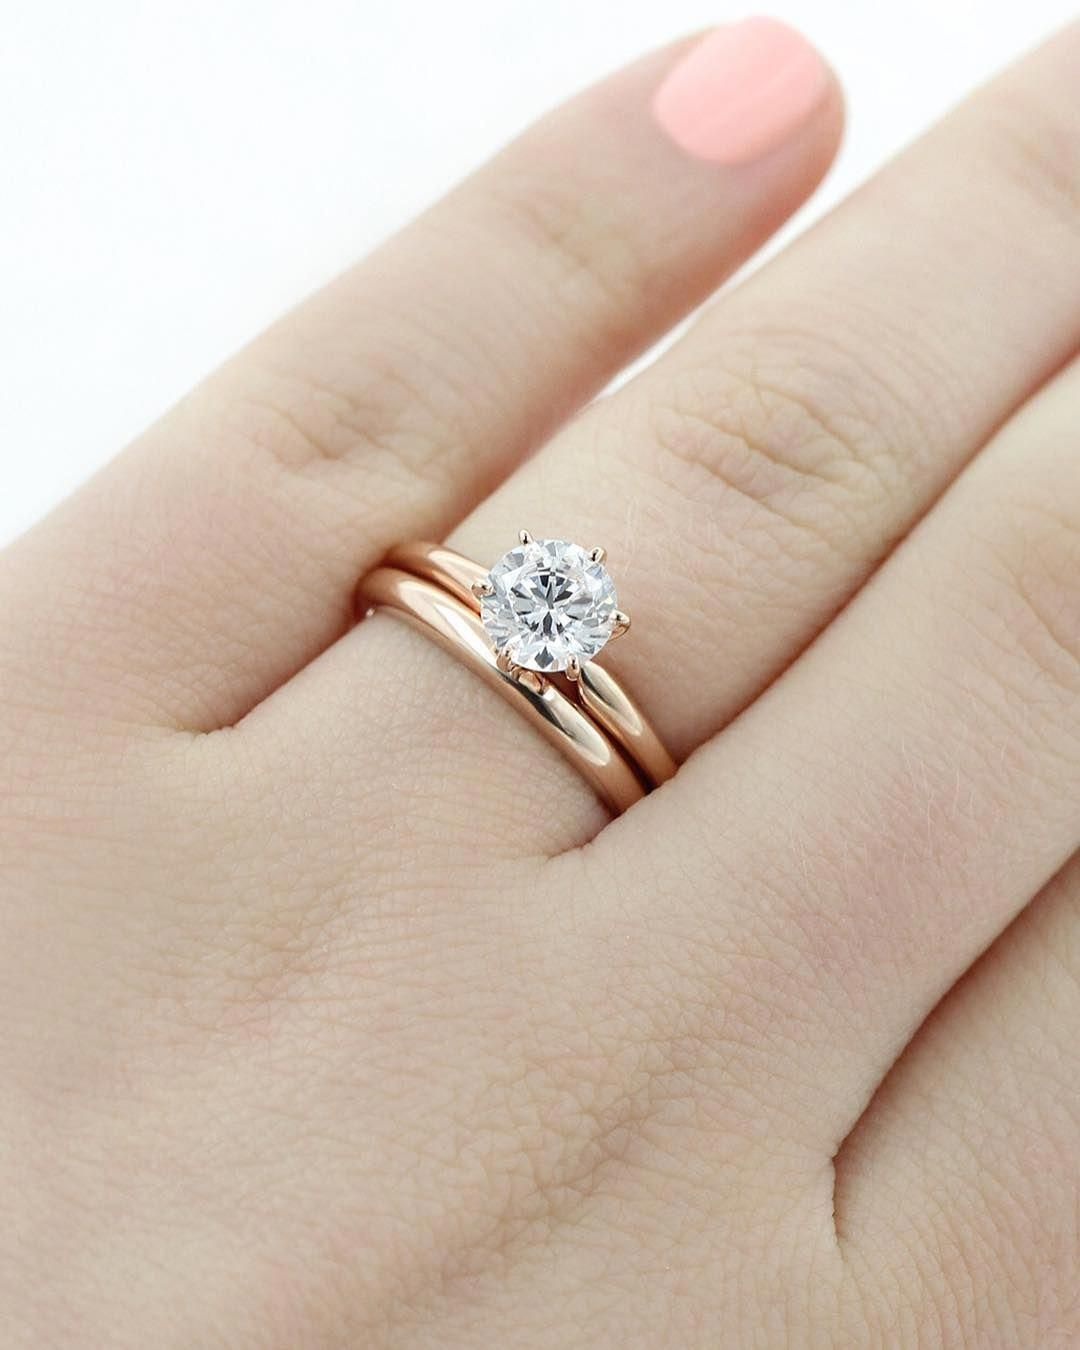 The Traditional Solitaire Engagement Ring and matching